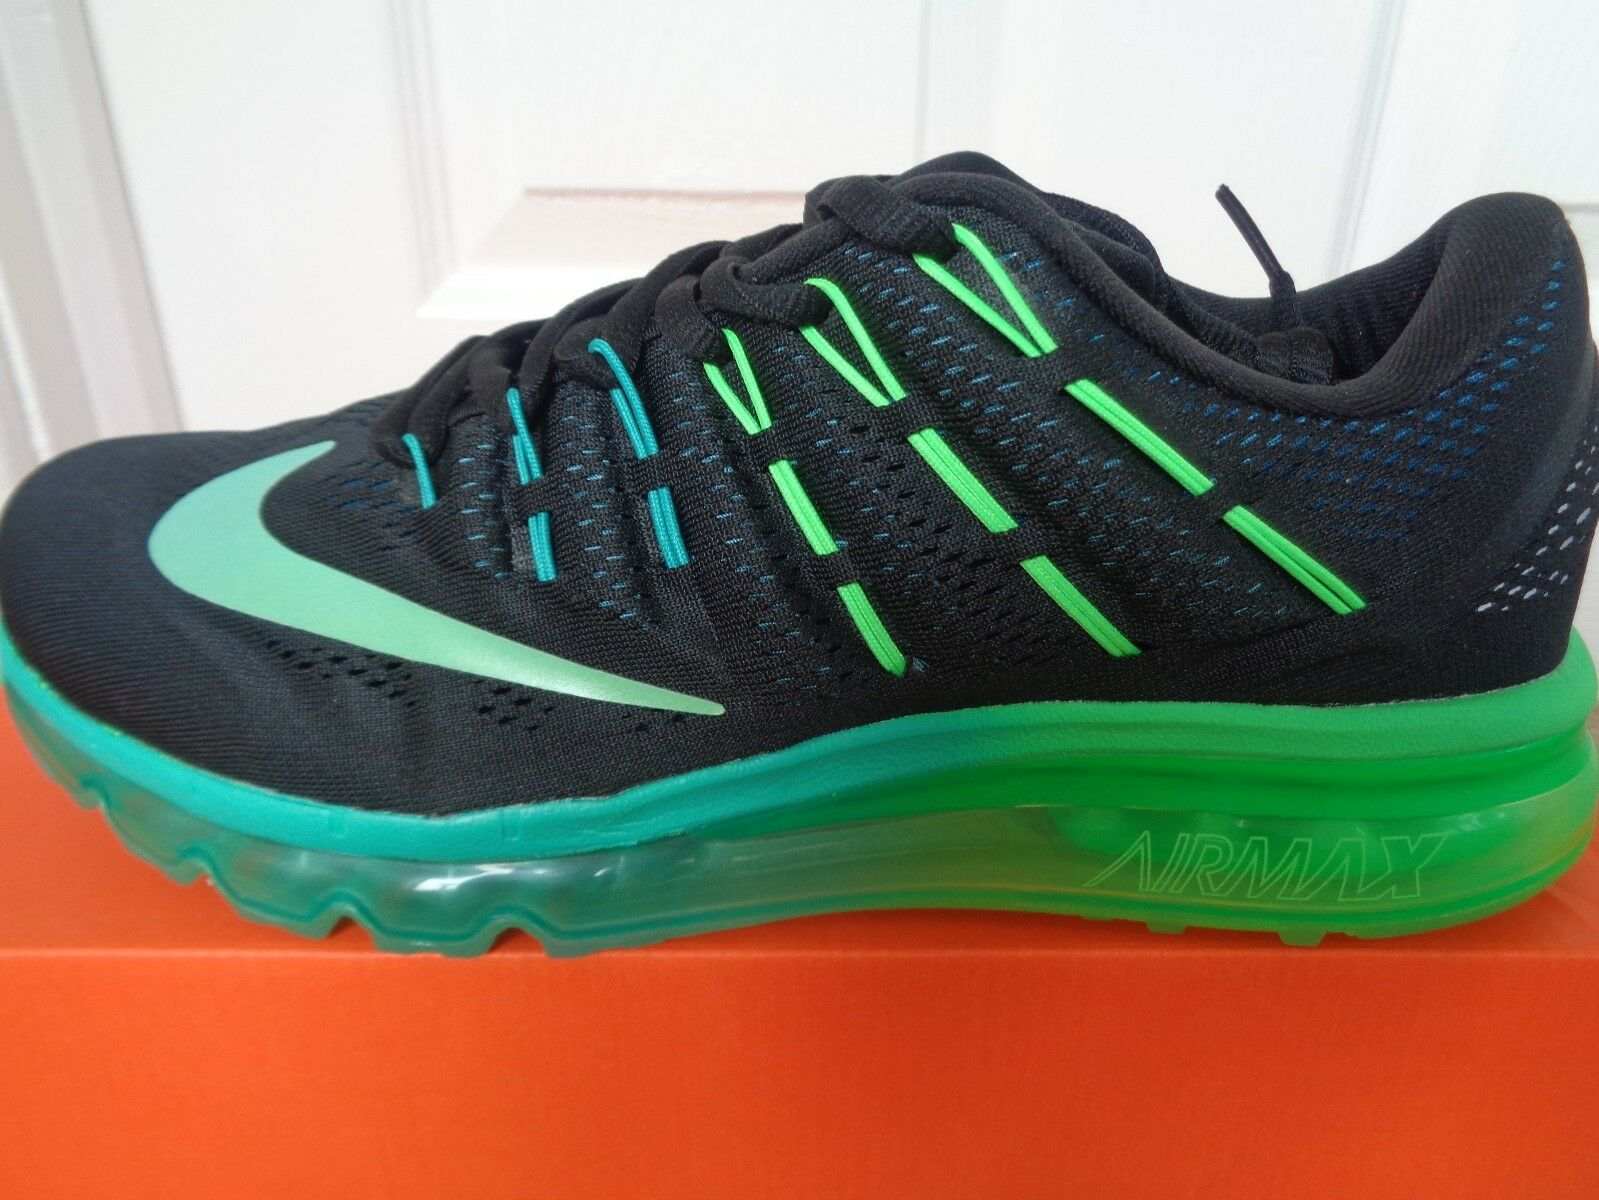 Nike Air max 2016 trainers sneakers shoes 806771 42.5 003 uk 8 eu 42.5 806771 us 9 NEW+BOX 78c89e